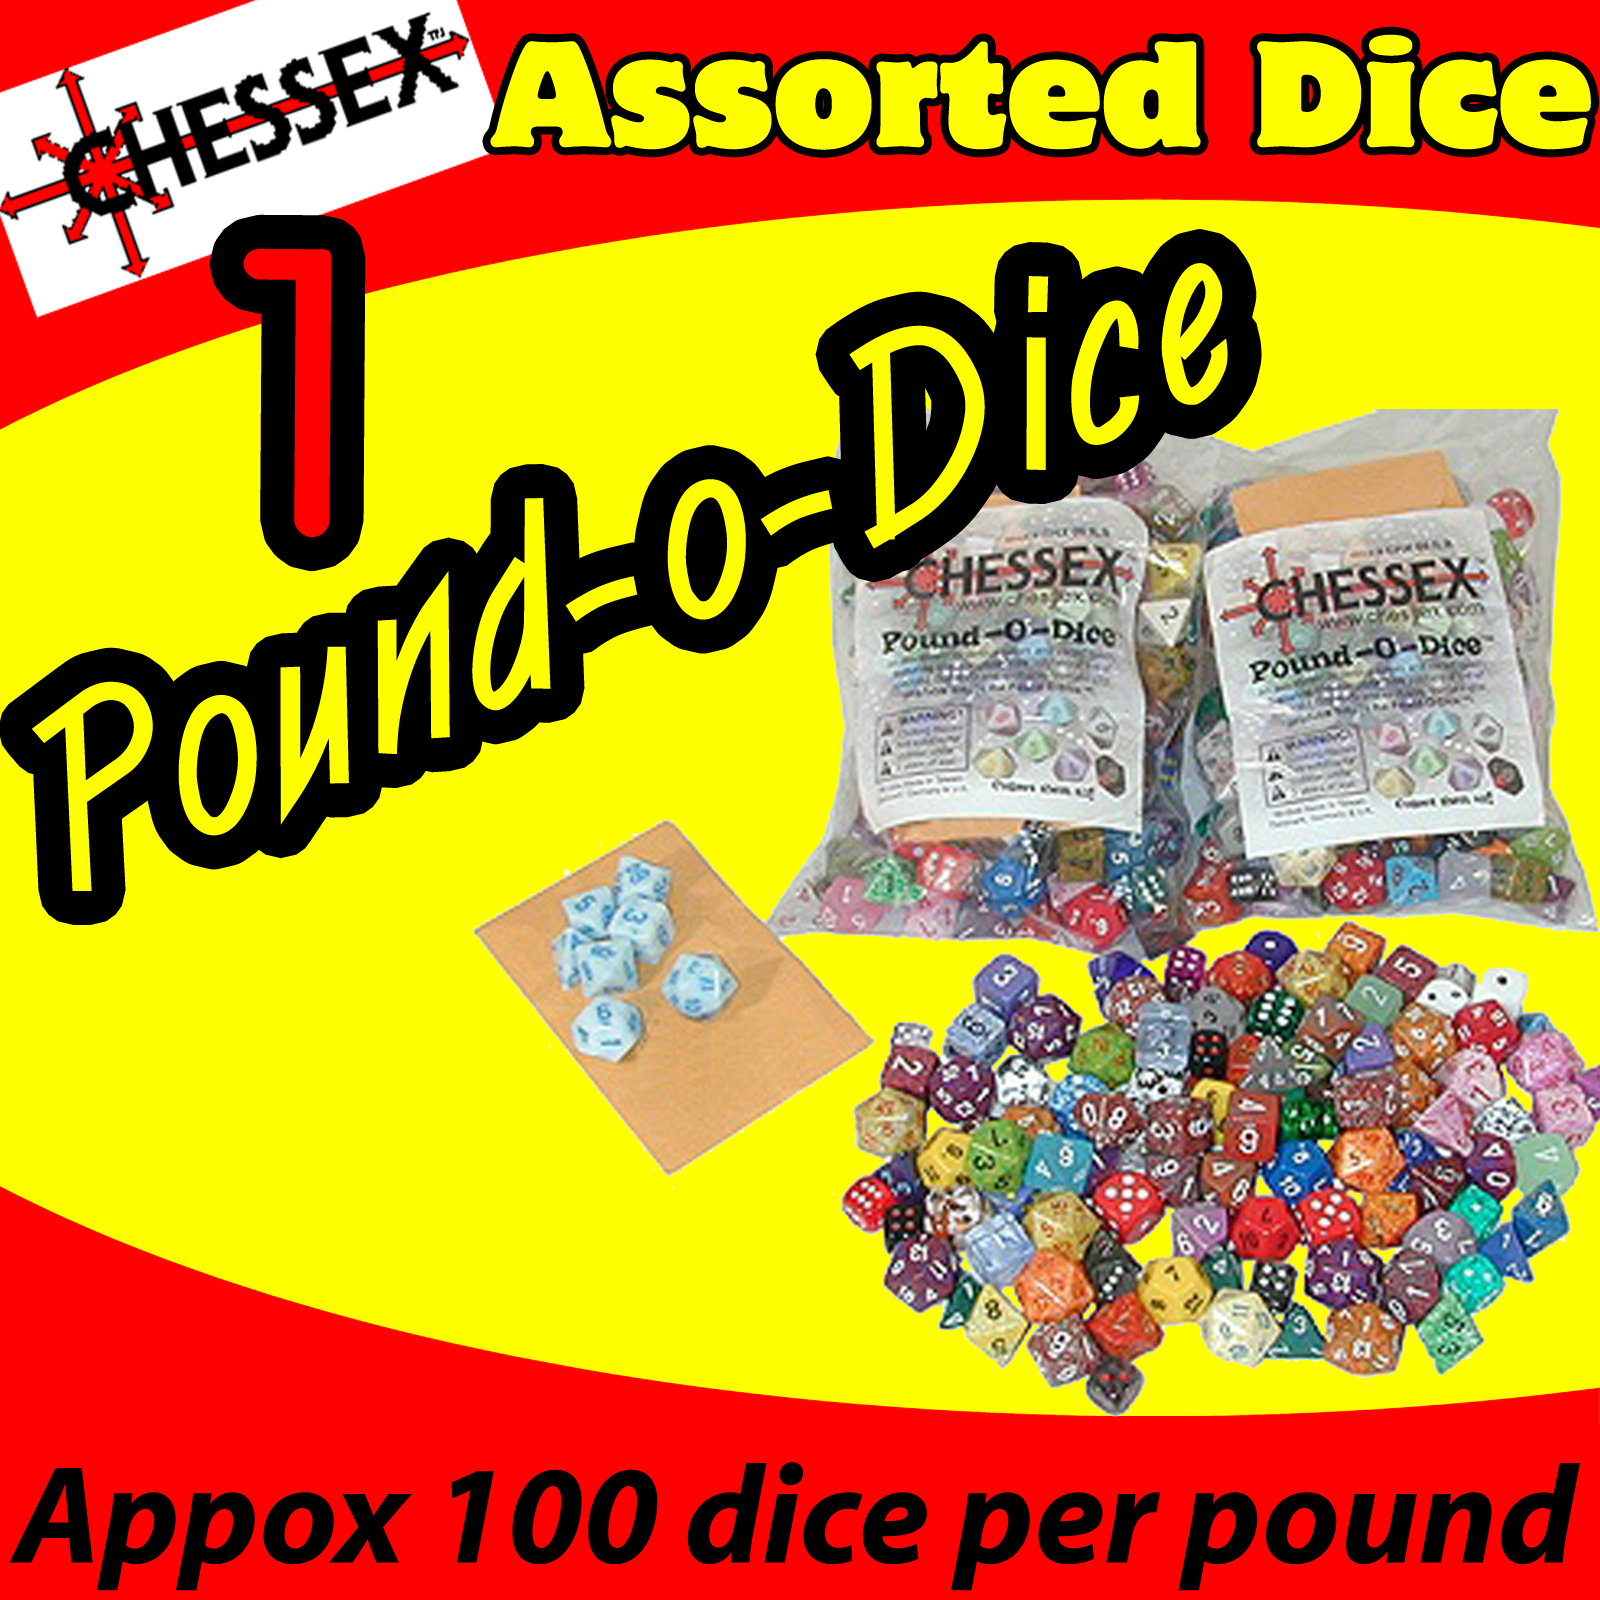 Chessex Pound O Dice (1lb) USA SHIPPING